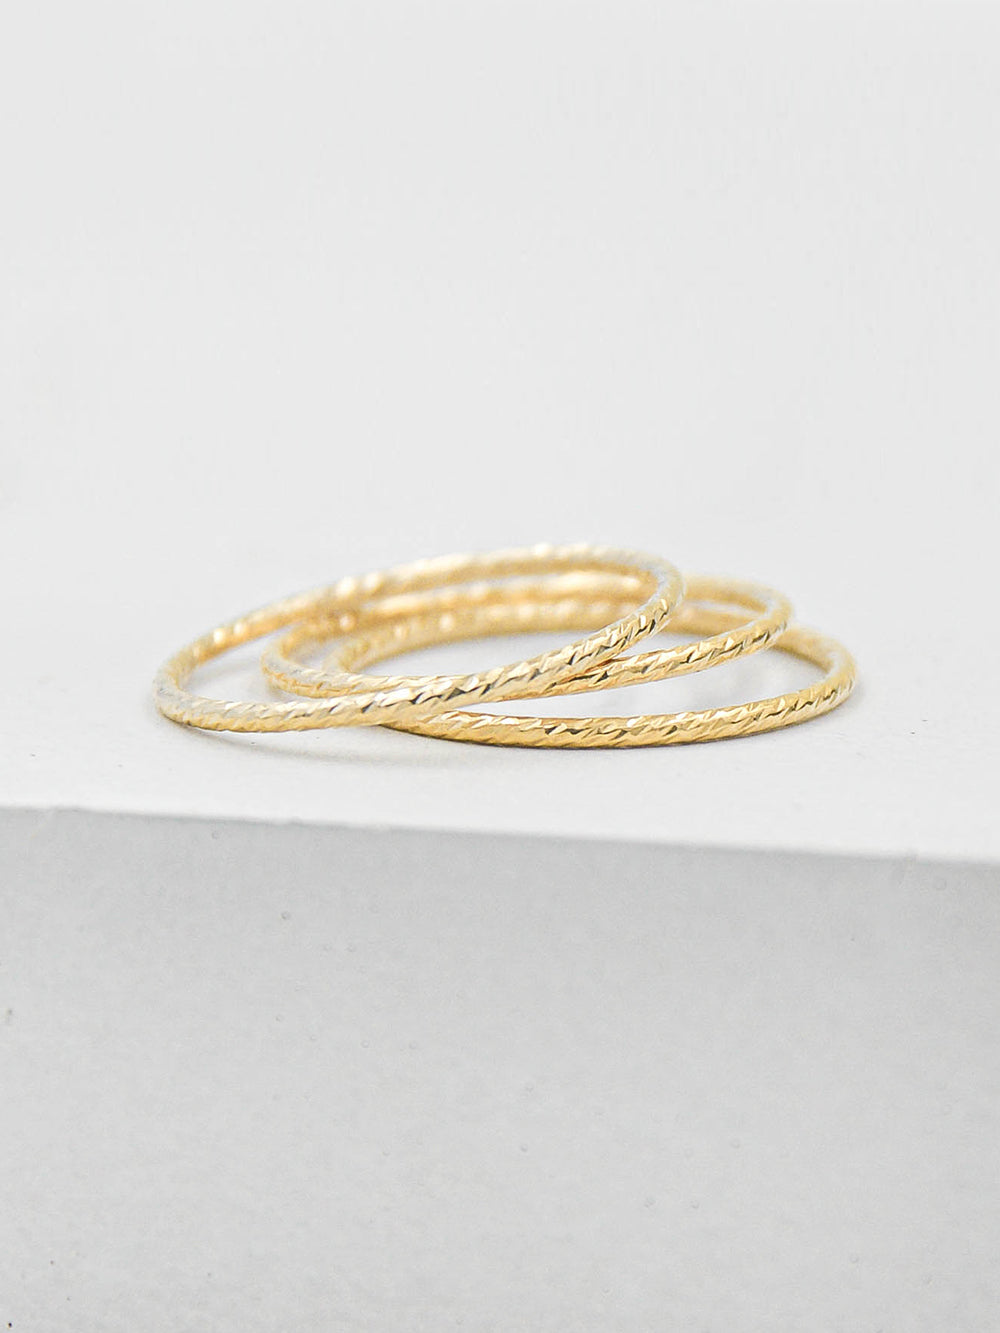 Set of 3 Thin Gold Filled Ring by The Faint Hearted Jewelry